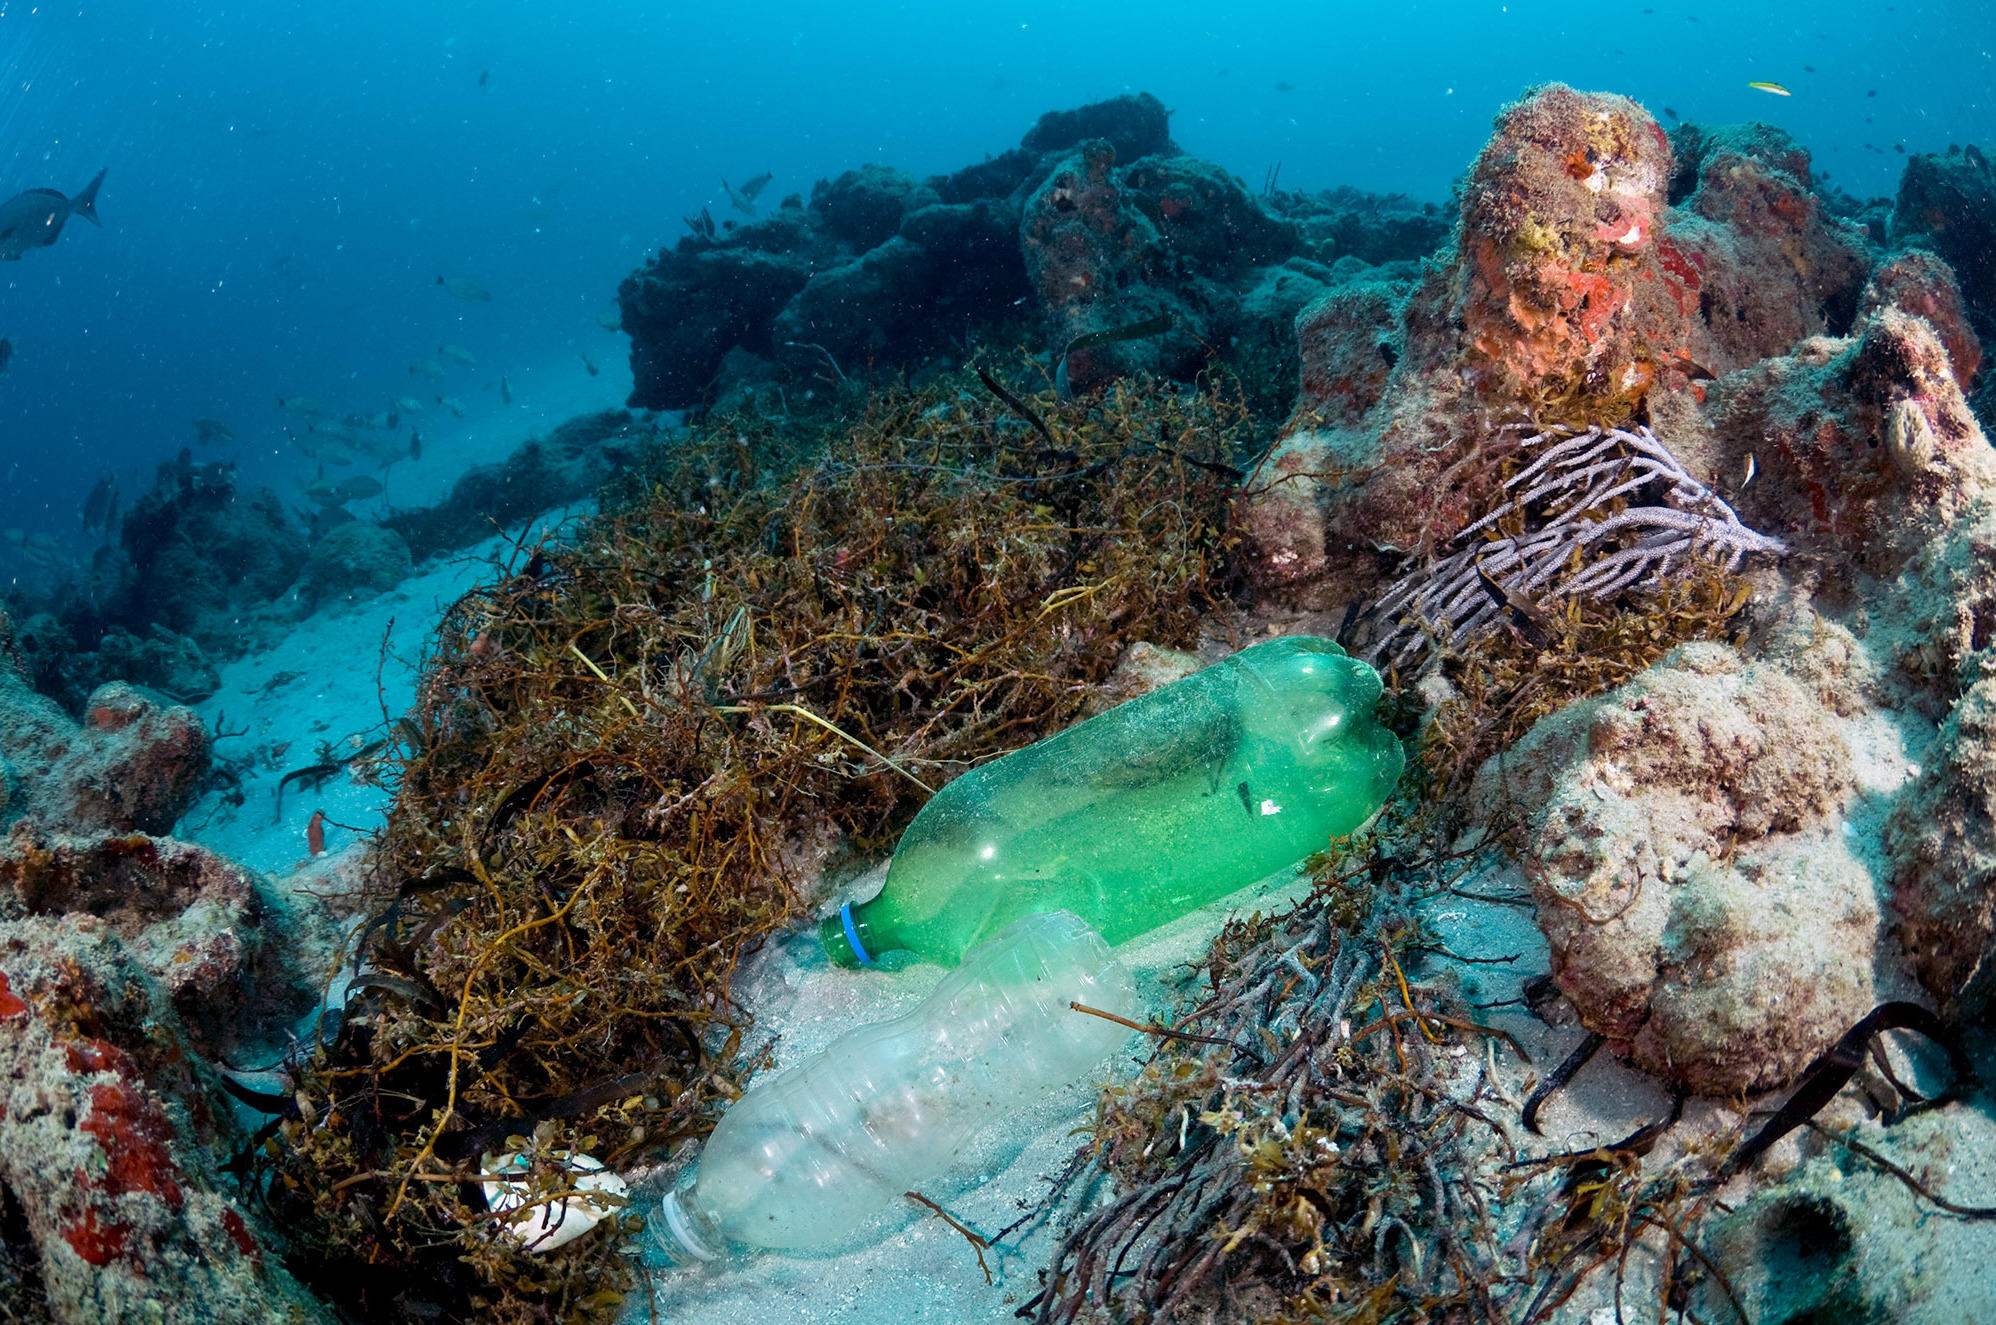 Ocean plastics raise risk of coral reef disease